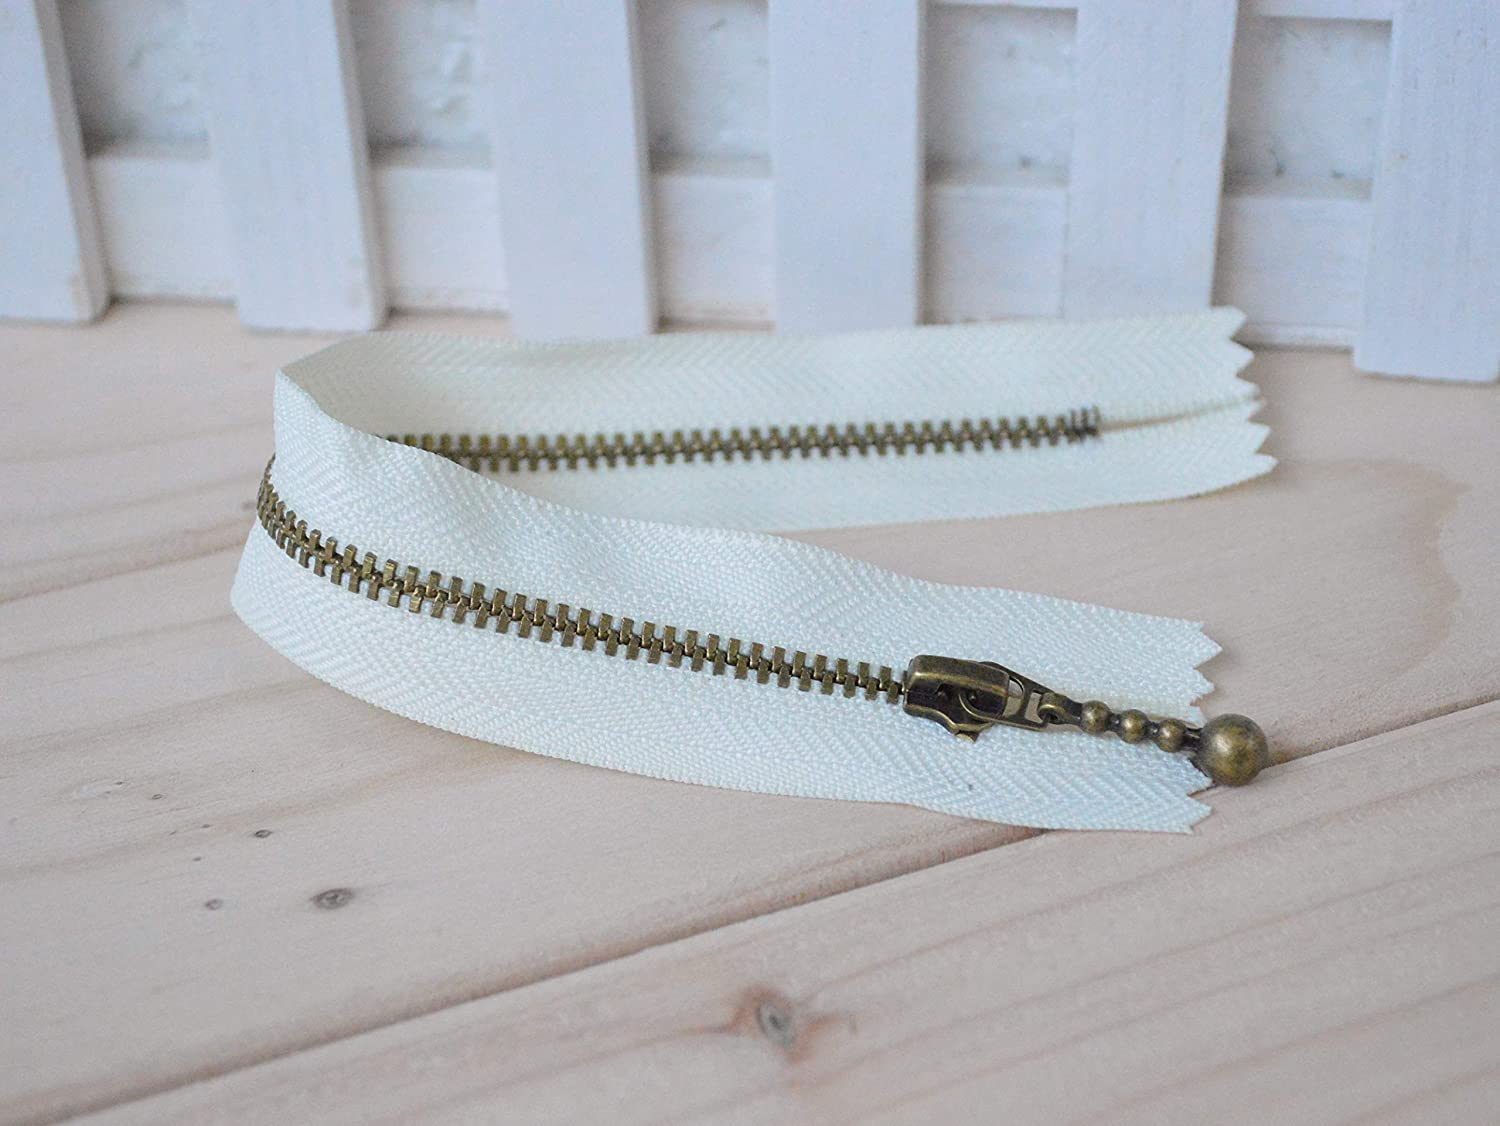 Antiqued Brass Metal Handbag Zippers - Off White - 12cm / 4.7inches (ZP12-1-5) - 5pcs by Bag Zippers   B00WD5RQAW